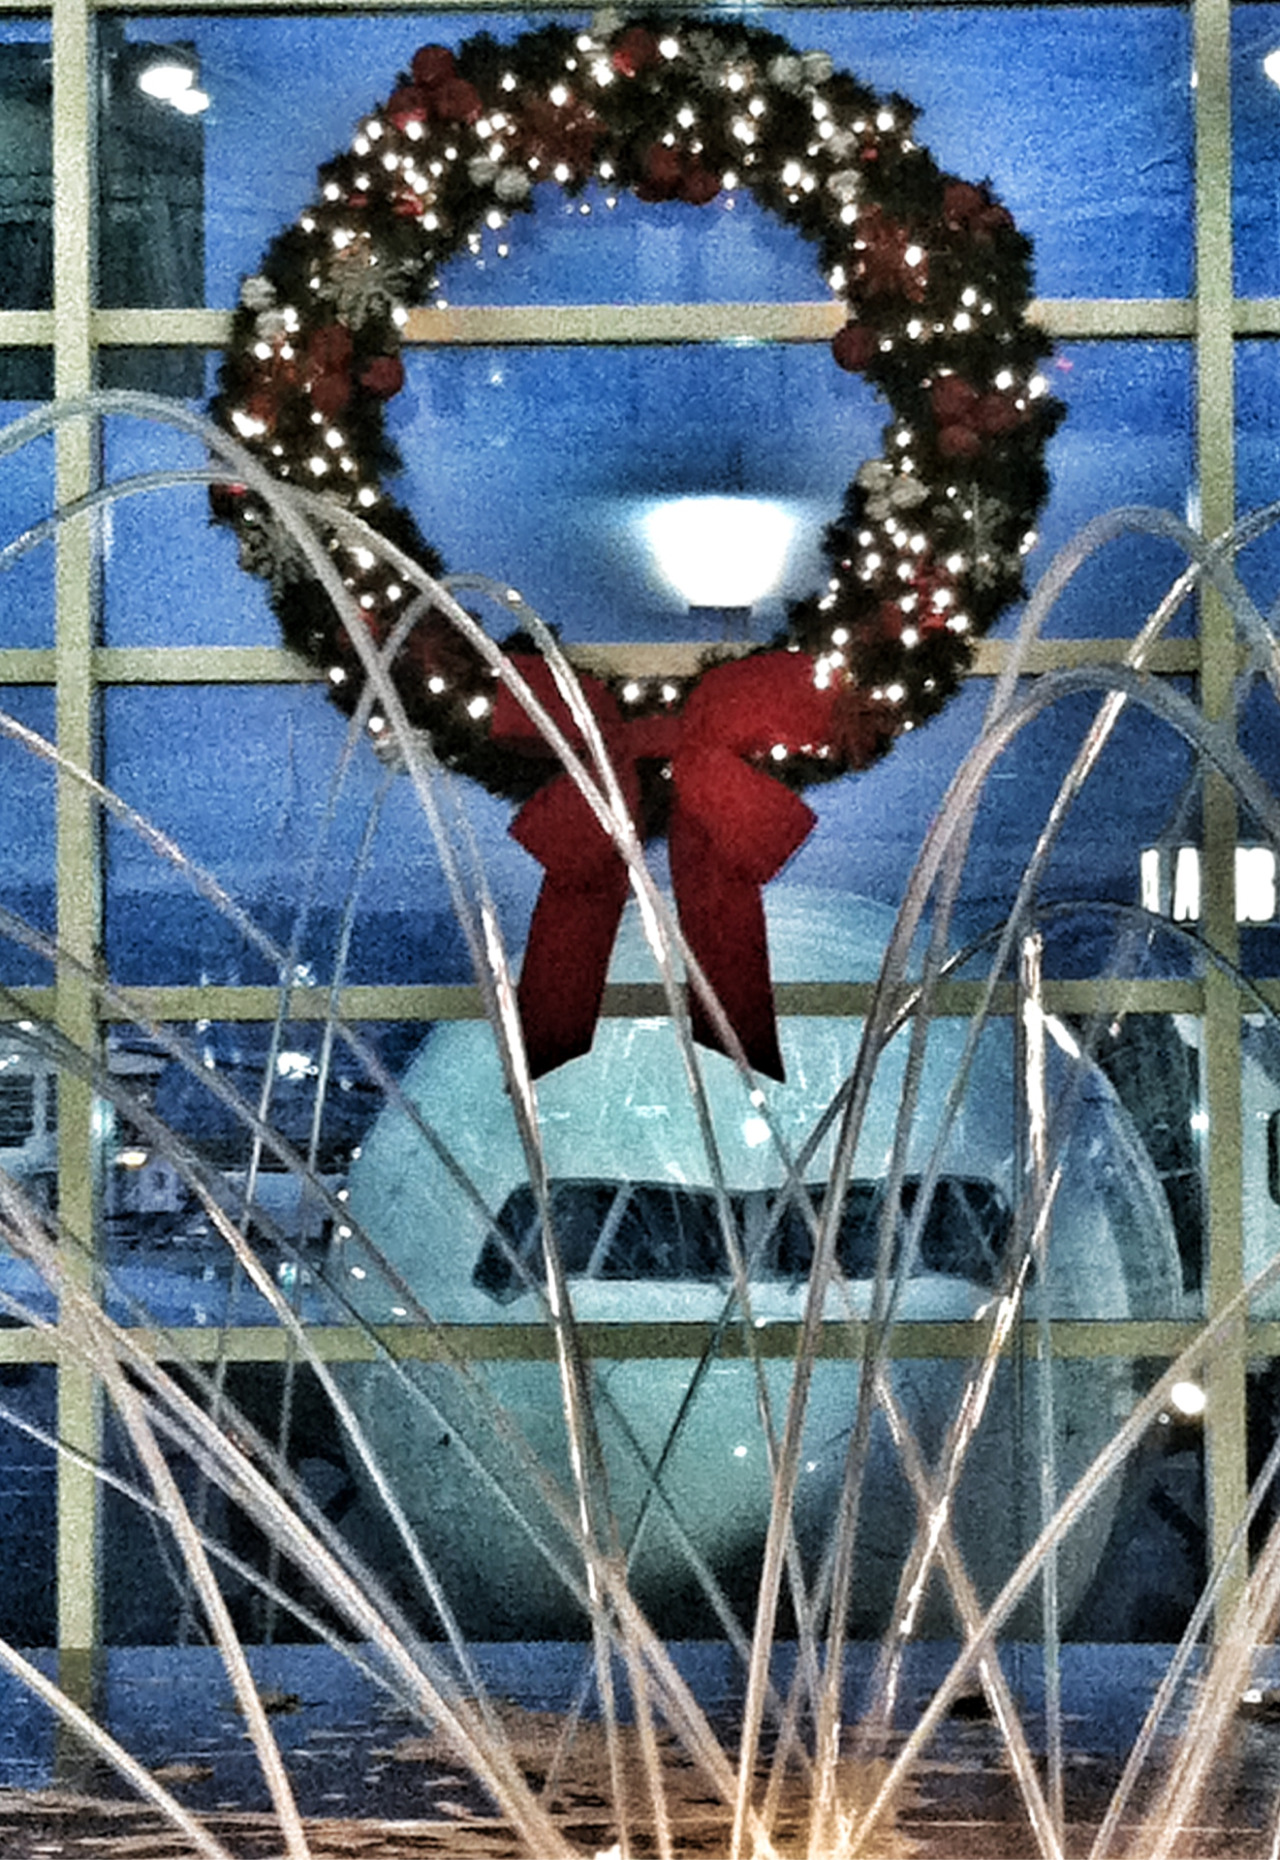 diversified-interests:  Christmas at DTW  Festive airport! #TCHolidayLights